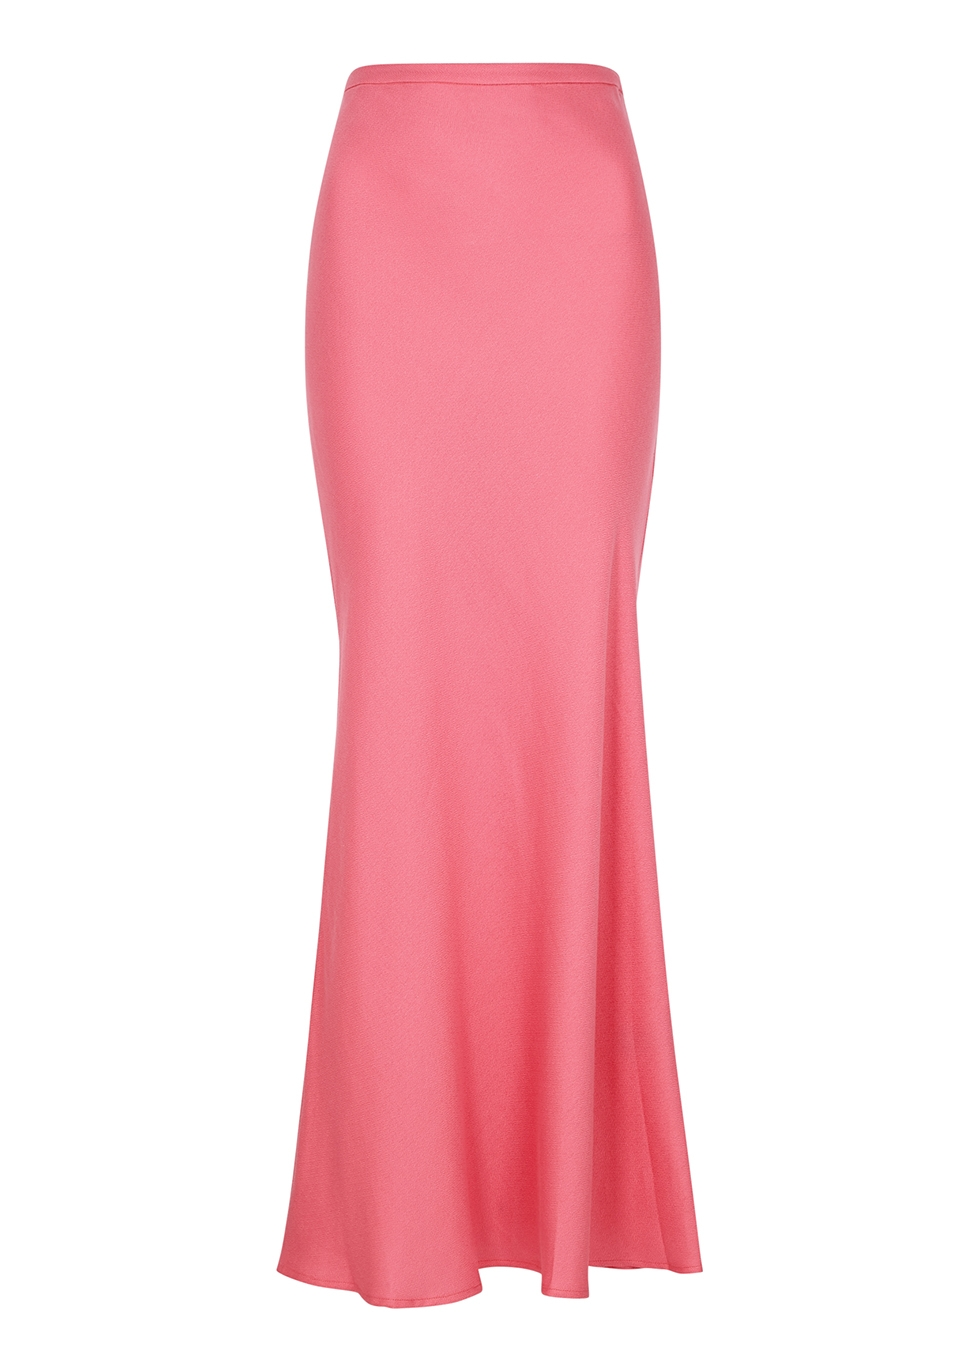 Shine Bright pink maxi skirt